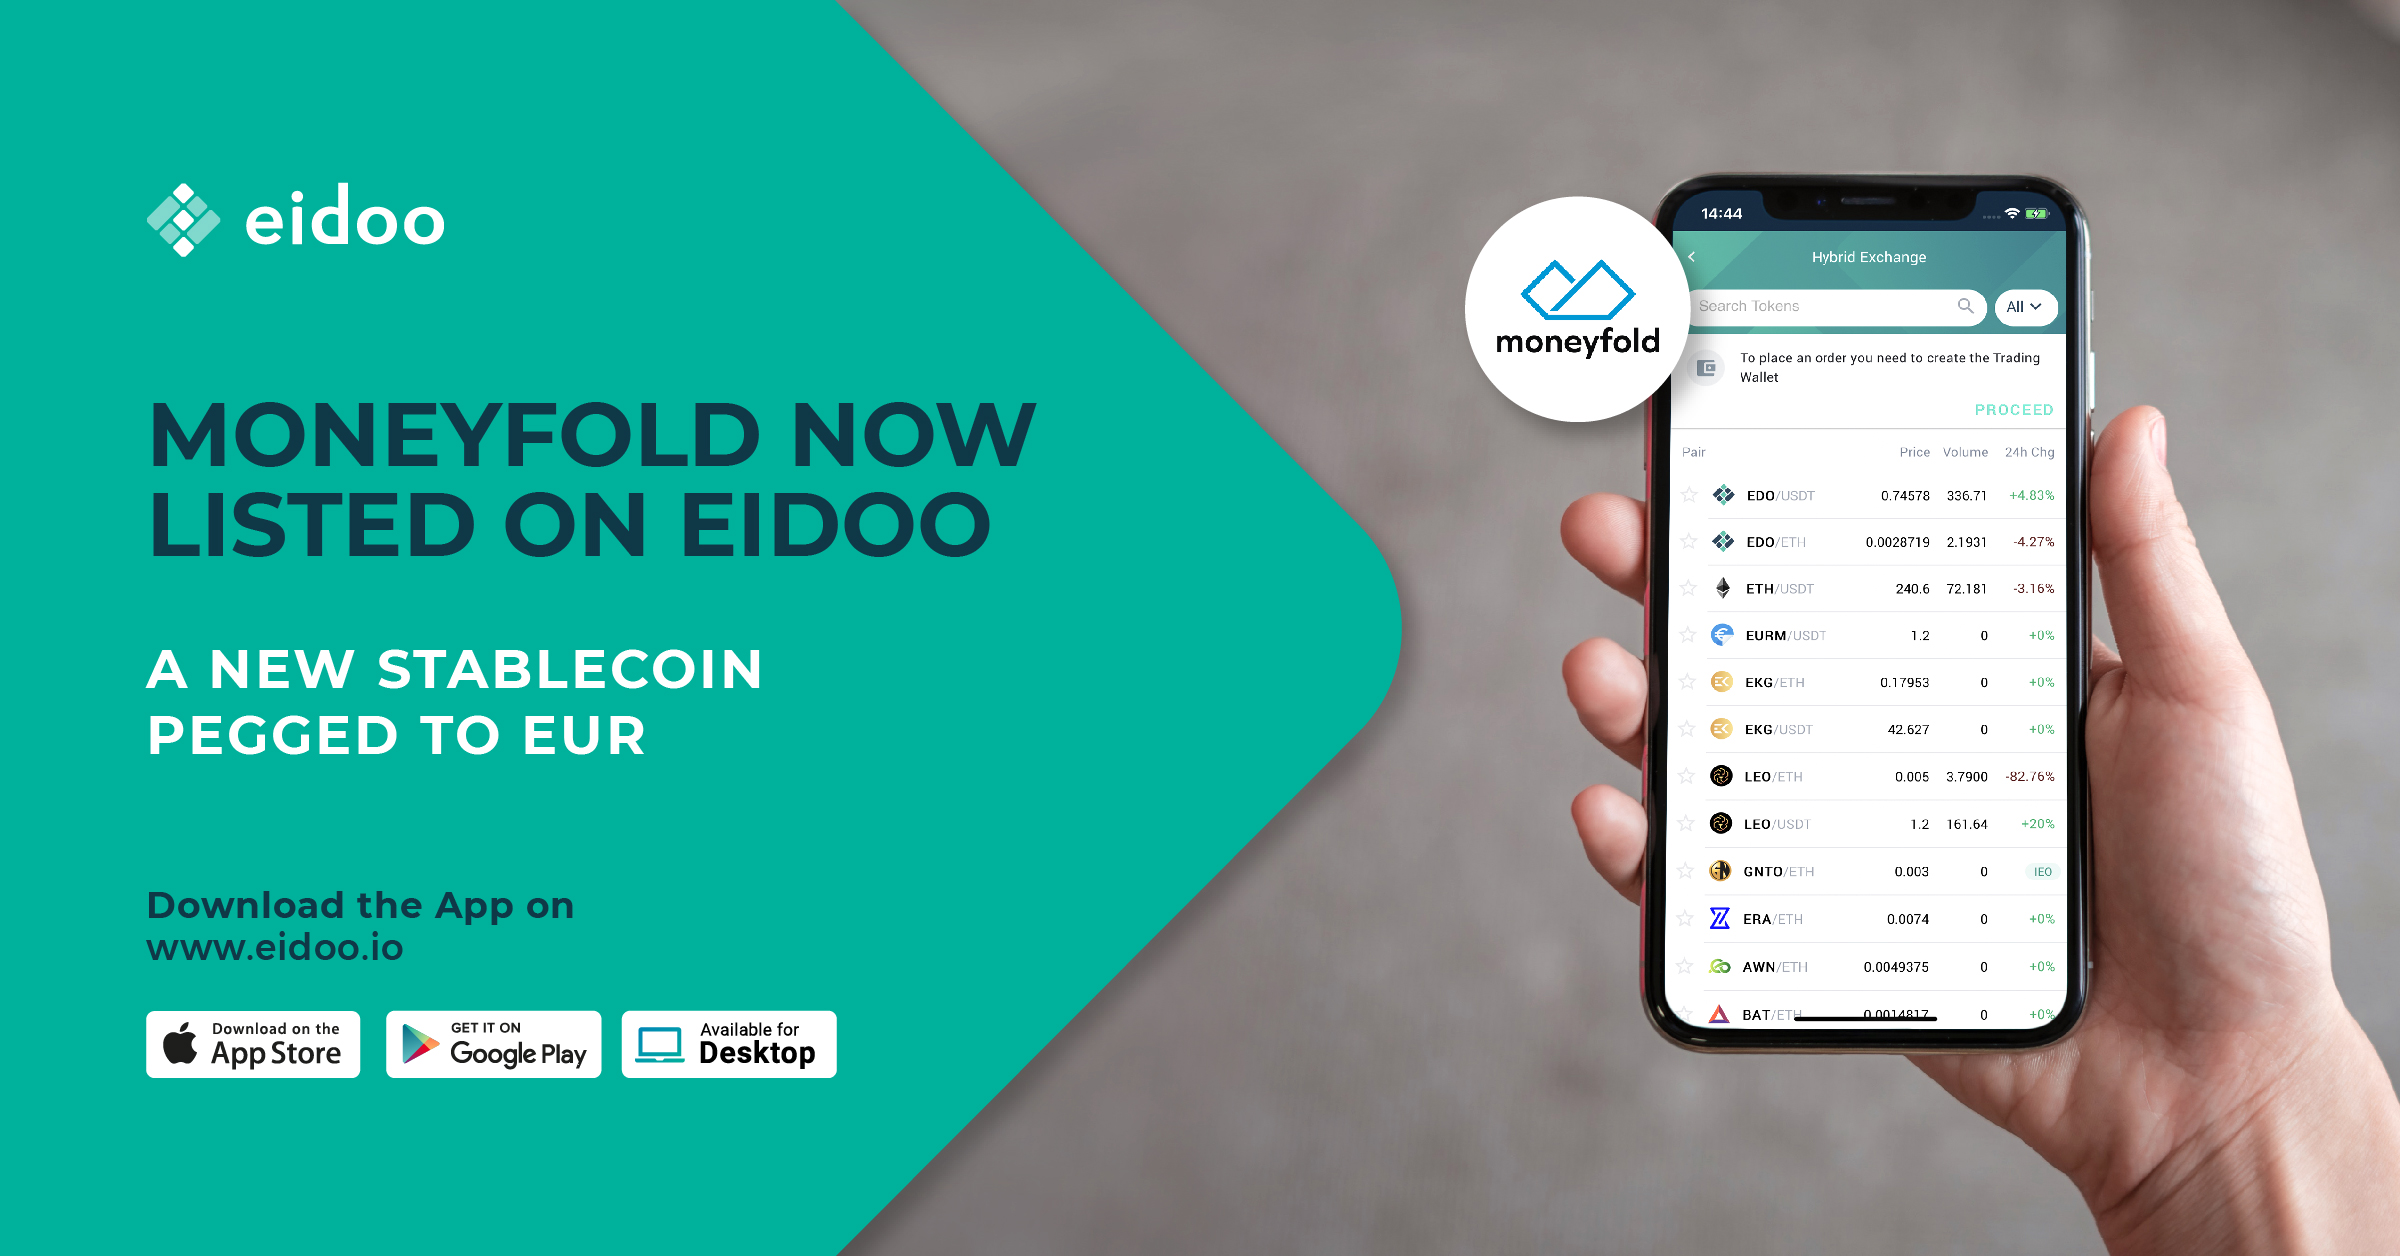 Eidoo lists Moneyfold, a new stablecoin pegged to EUR